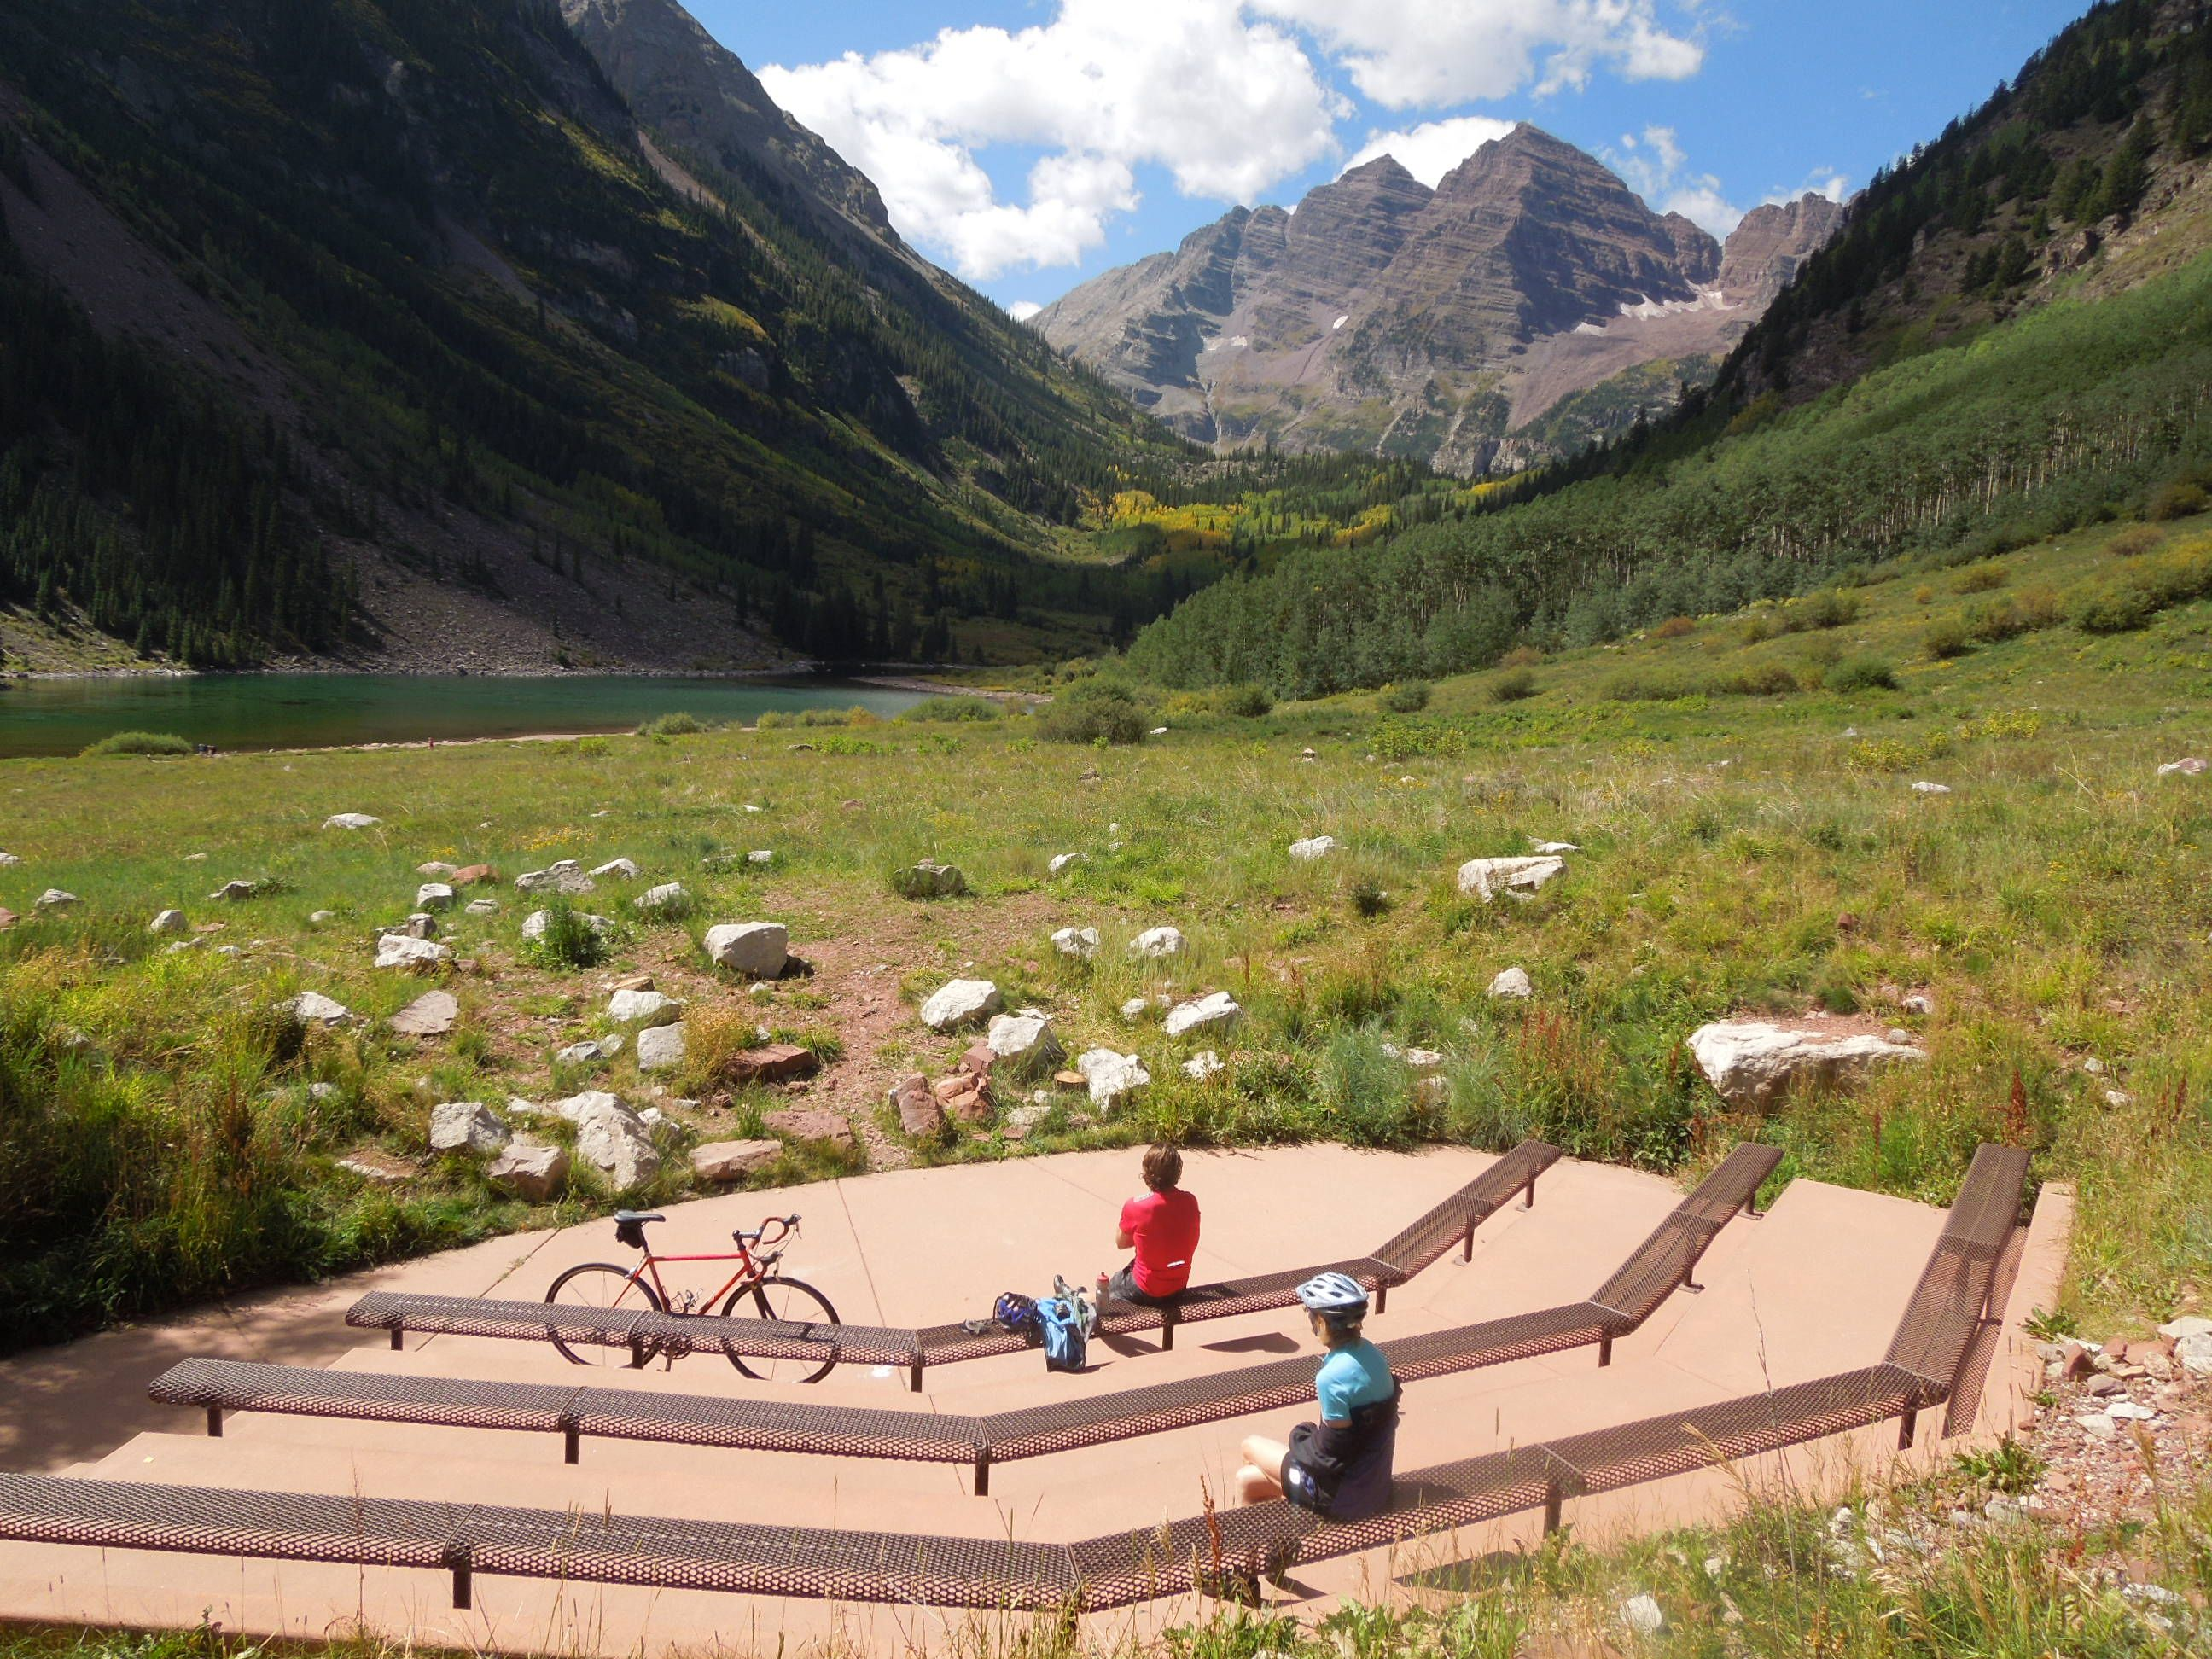 colorado wedding: amphitheater at the maroon bells near aspen. rev